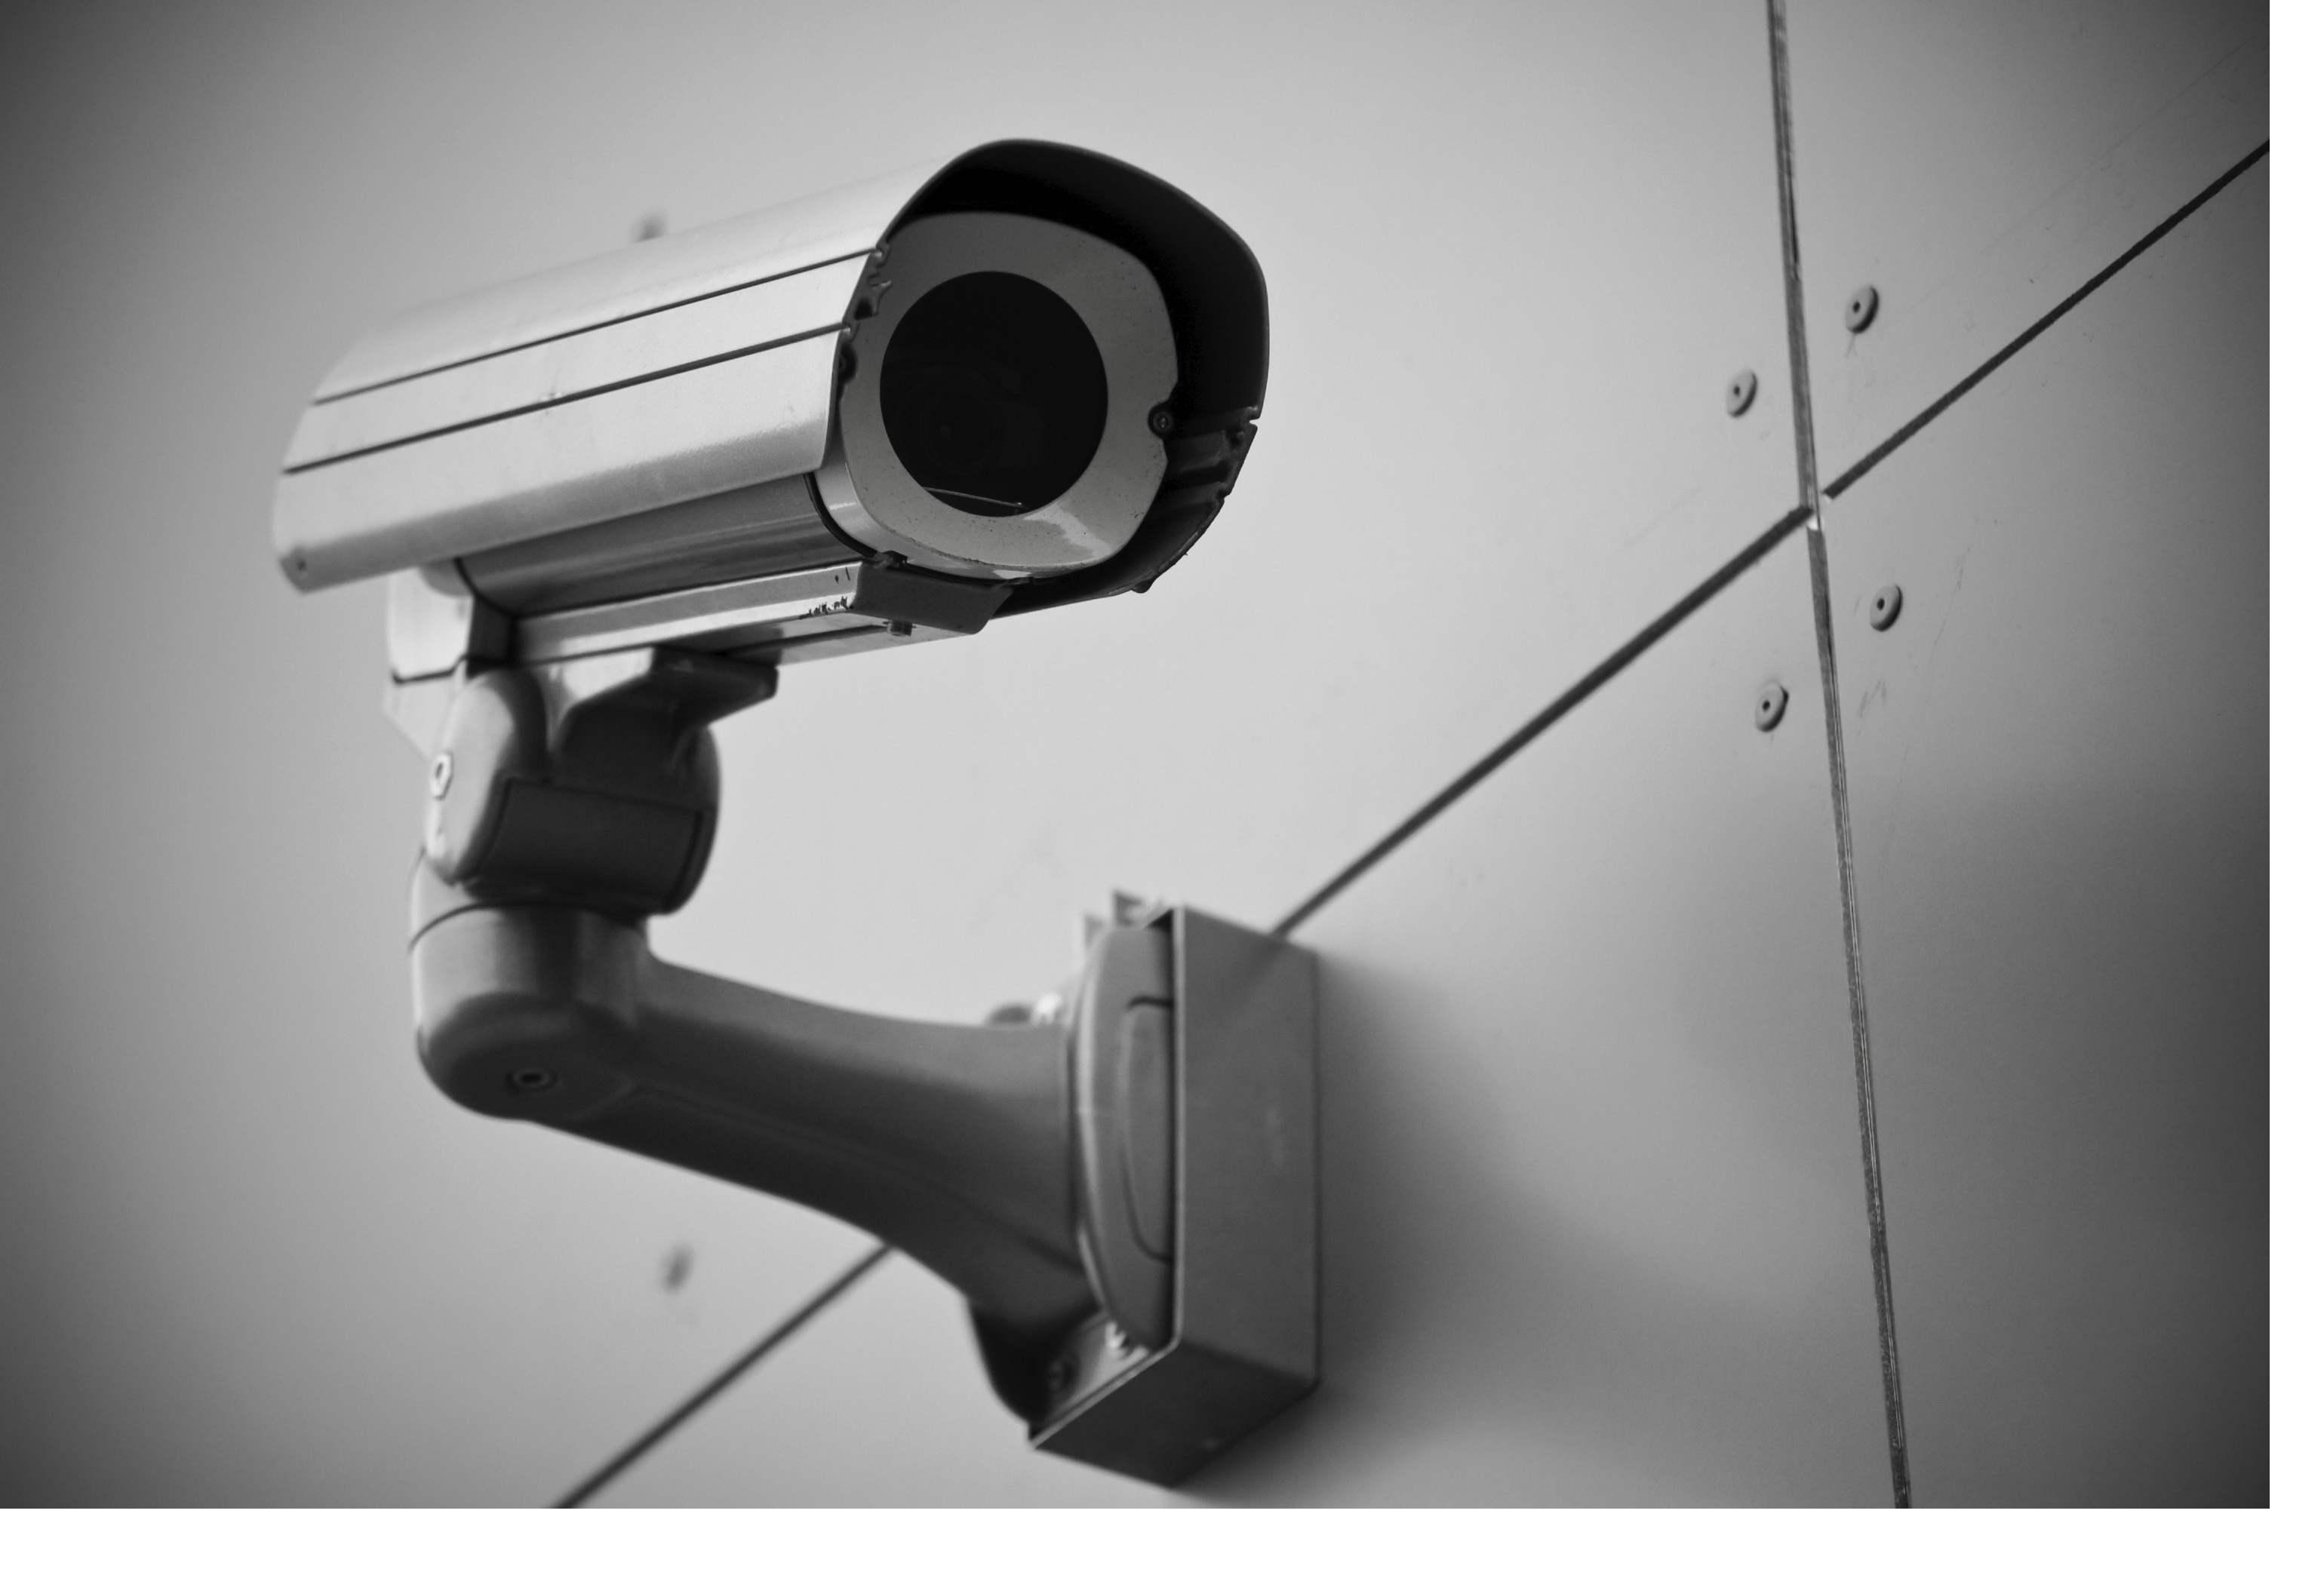 cctv_camera_black_and_white_2